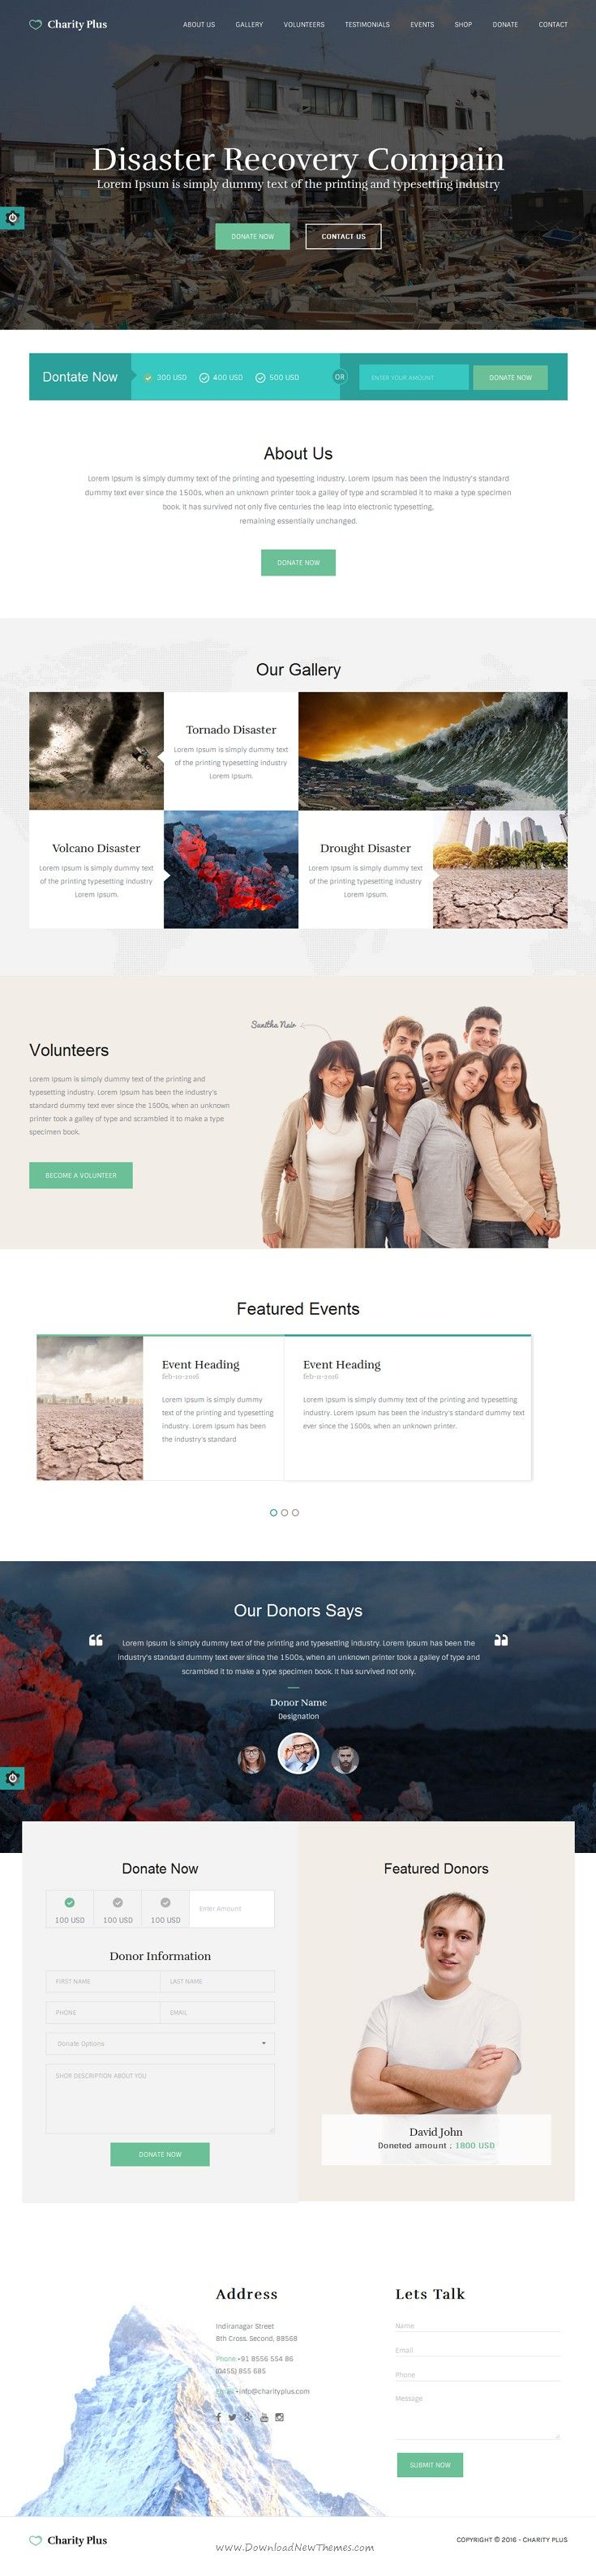 CharityPlus, clean, modern, user friendly and responsive Bootstrap HTML #website #template suitable for charity, NGO, non-profit organization, #donation, church or a #fundraising website.